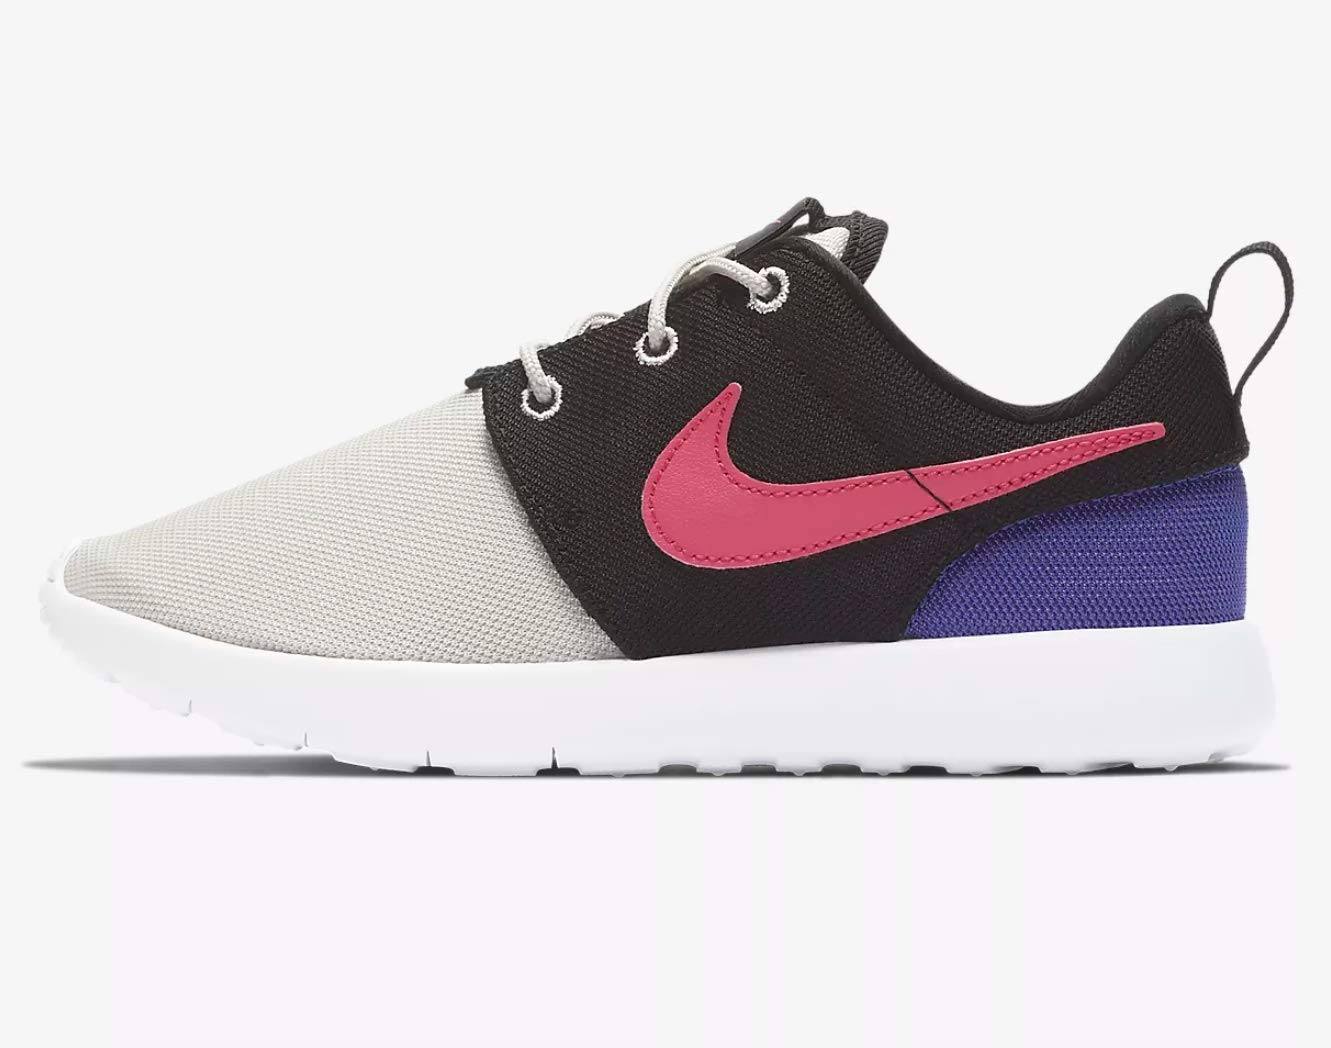 save off d5f63 06f9a Galleon - Nike Roshe One (ps) Little Kids 749427-045 Size 2.5